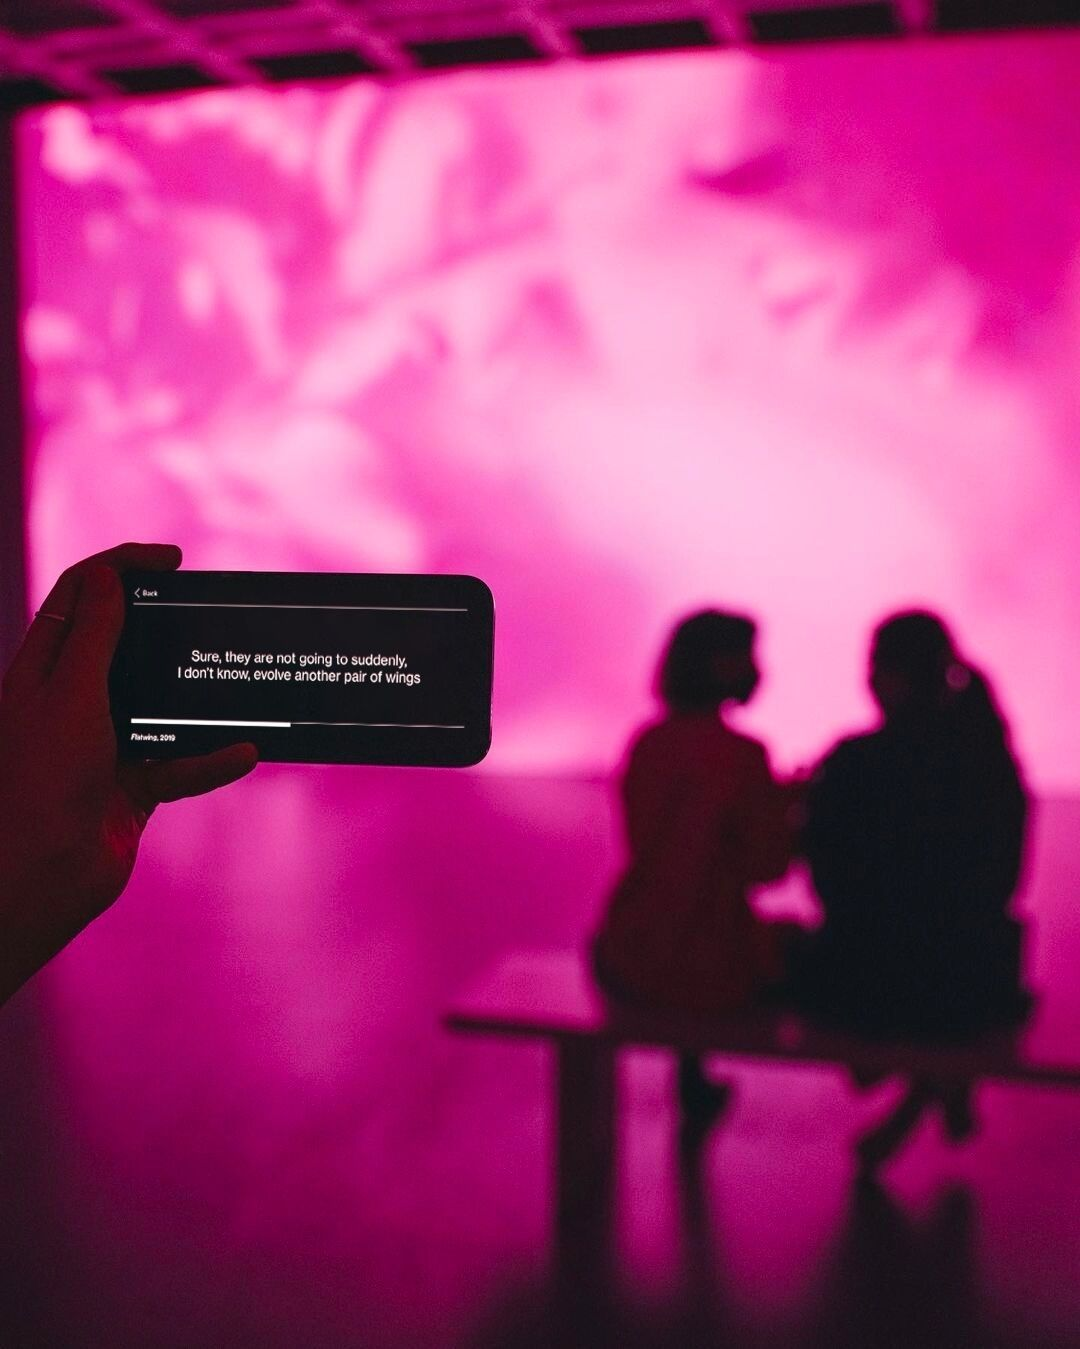 In the foreground, a hand holds a mobile device displaying white words on a black background and in the background, a two people view a fuchsia-soaked projection on a wall.